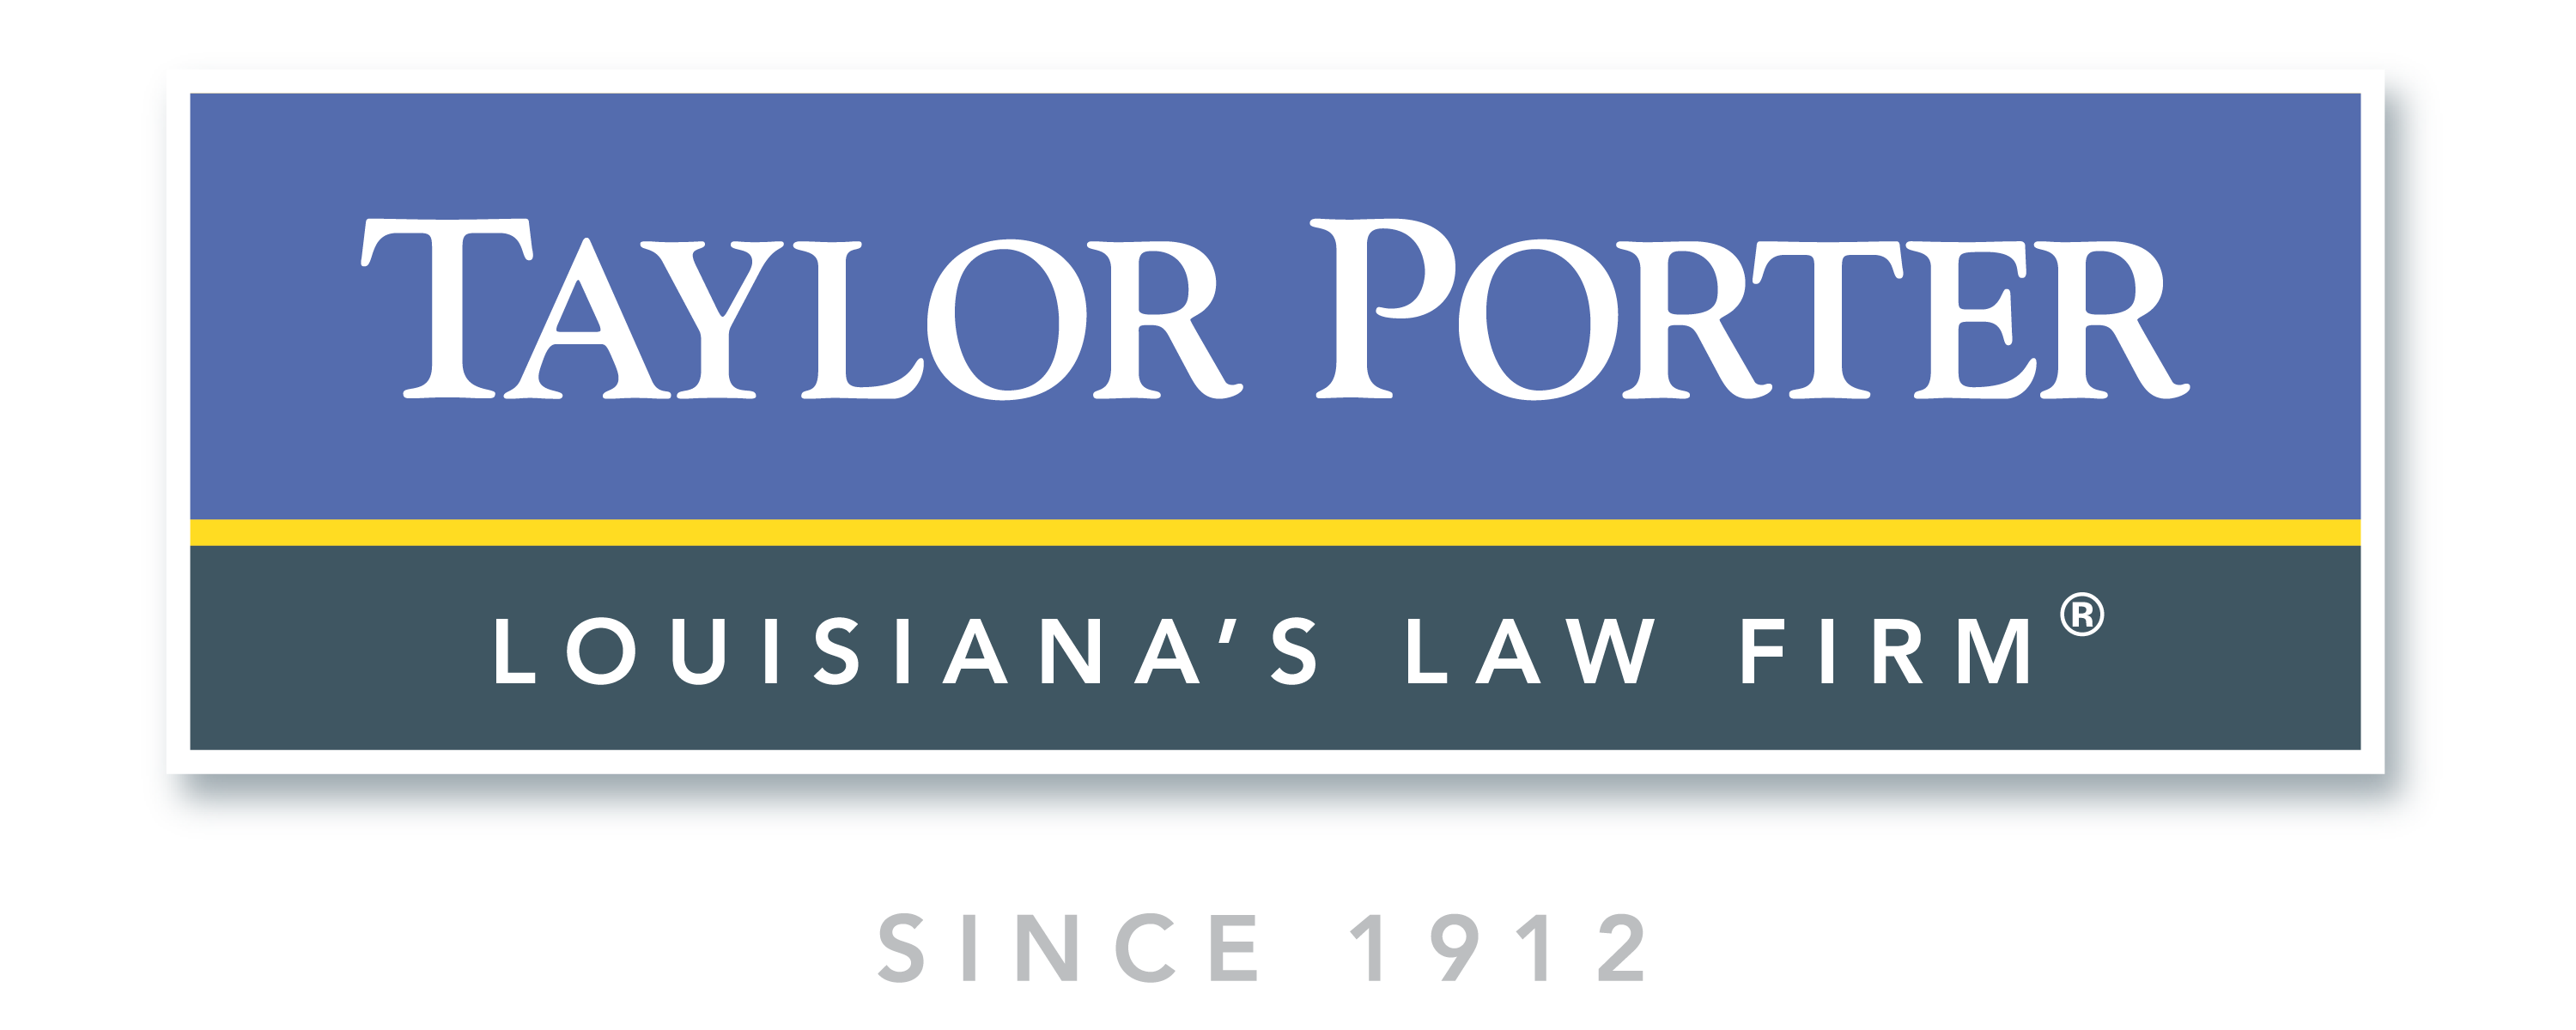 Logo for Taylor porter law firm